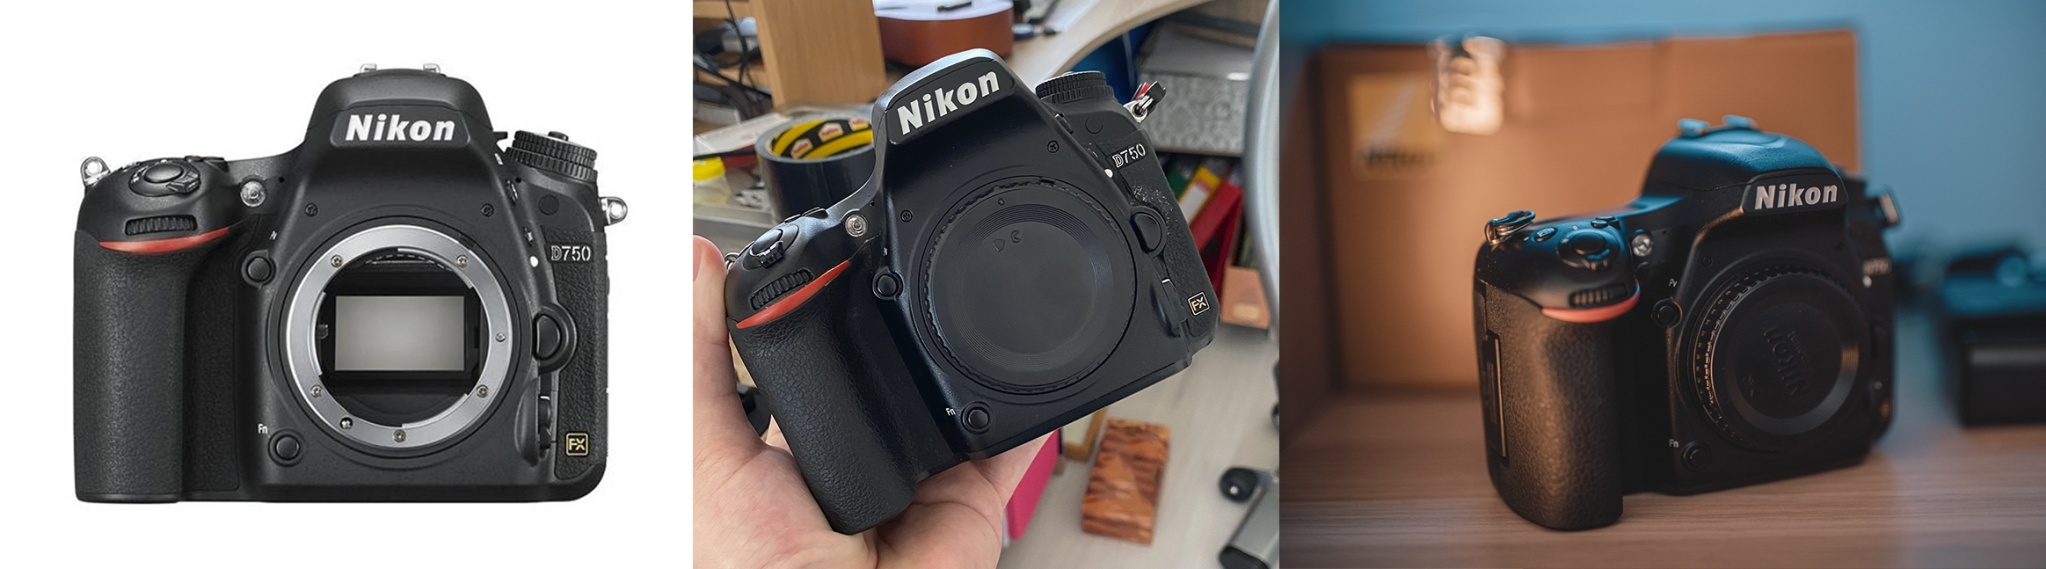 A Good Picture Sells! How to Take Pictures of Secondhand Items to Catch Your Buyer's Eye